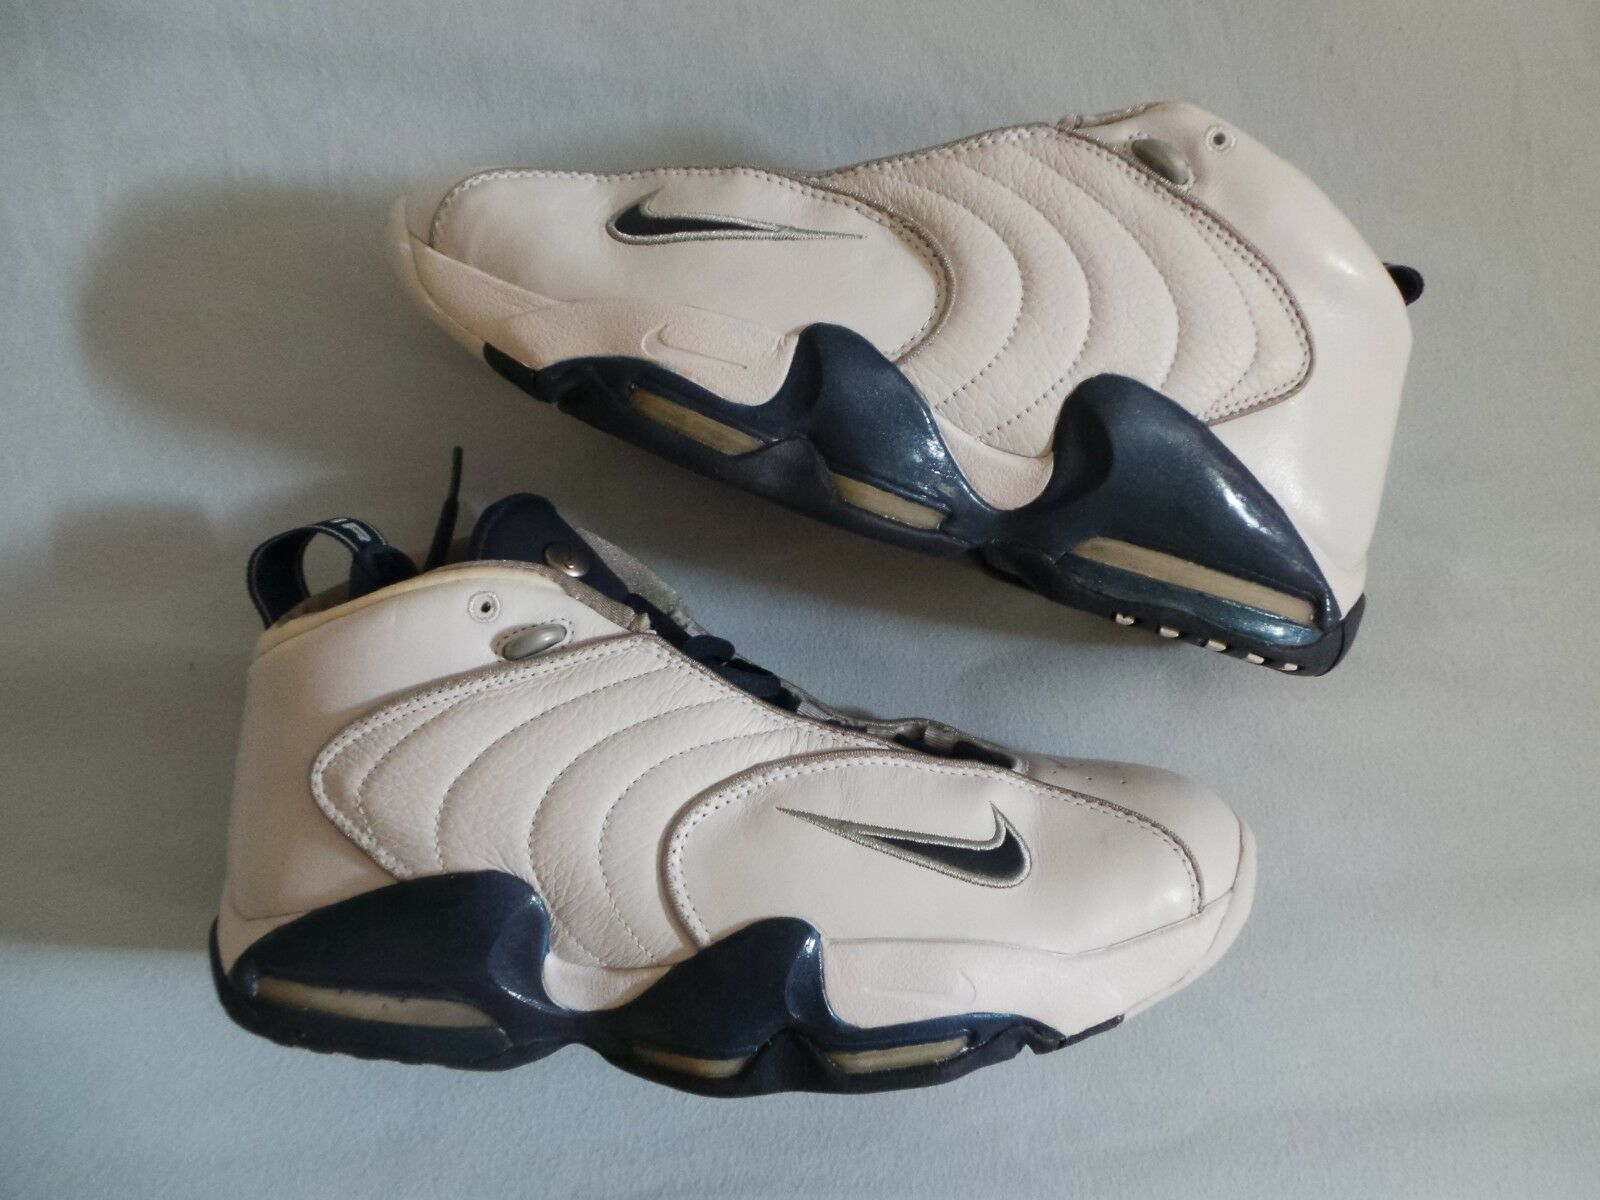 Nike Air Vis Zoom Viszoom Uptempo TB PE PS Samples size 11 white bluee OG DS NEW